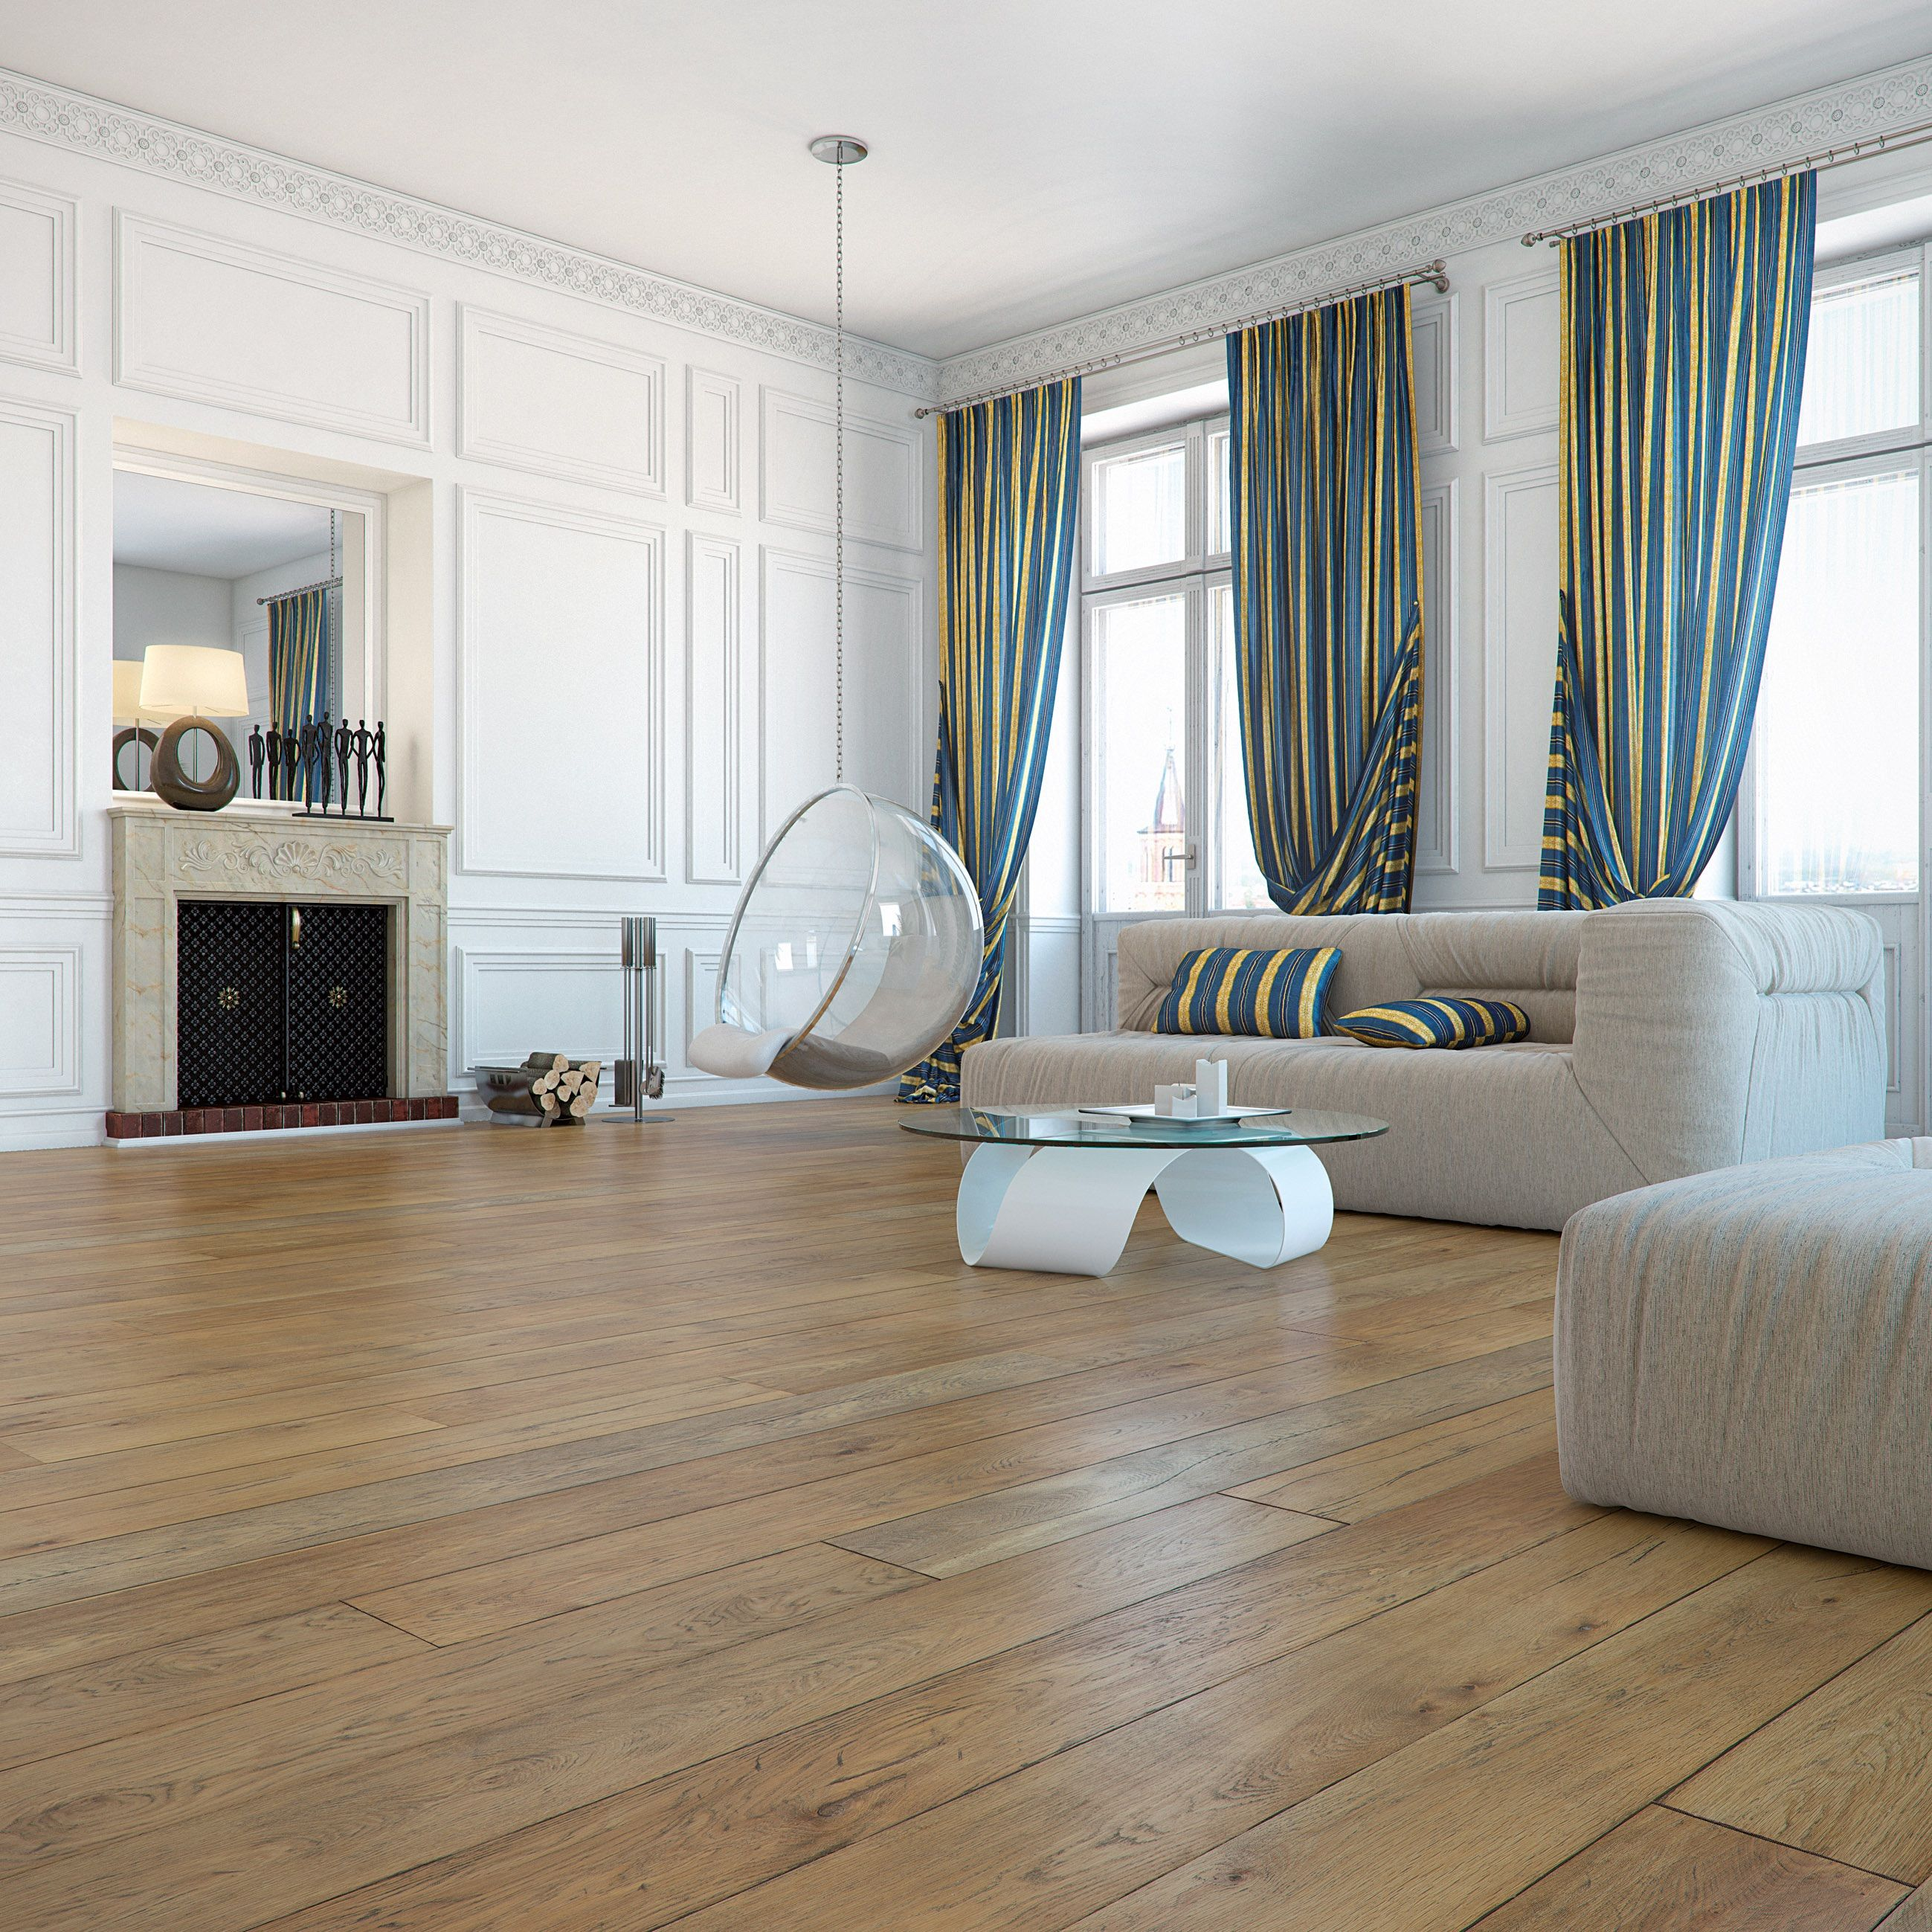 Chic And Simple. Havwoods Flooring And Wall Paneling